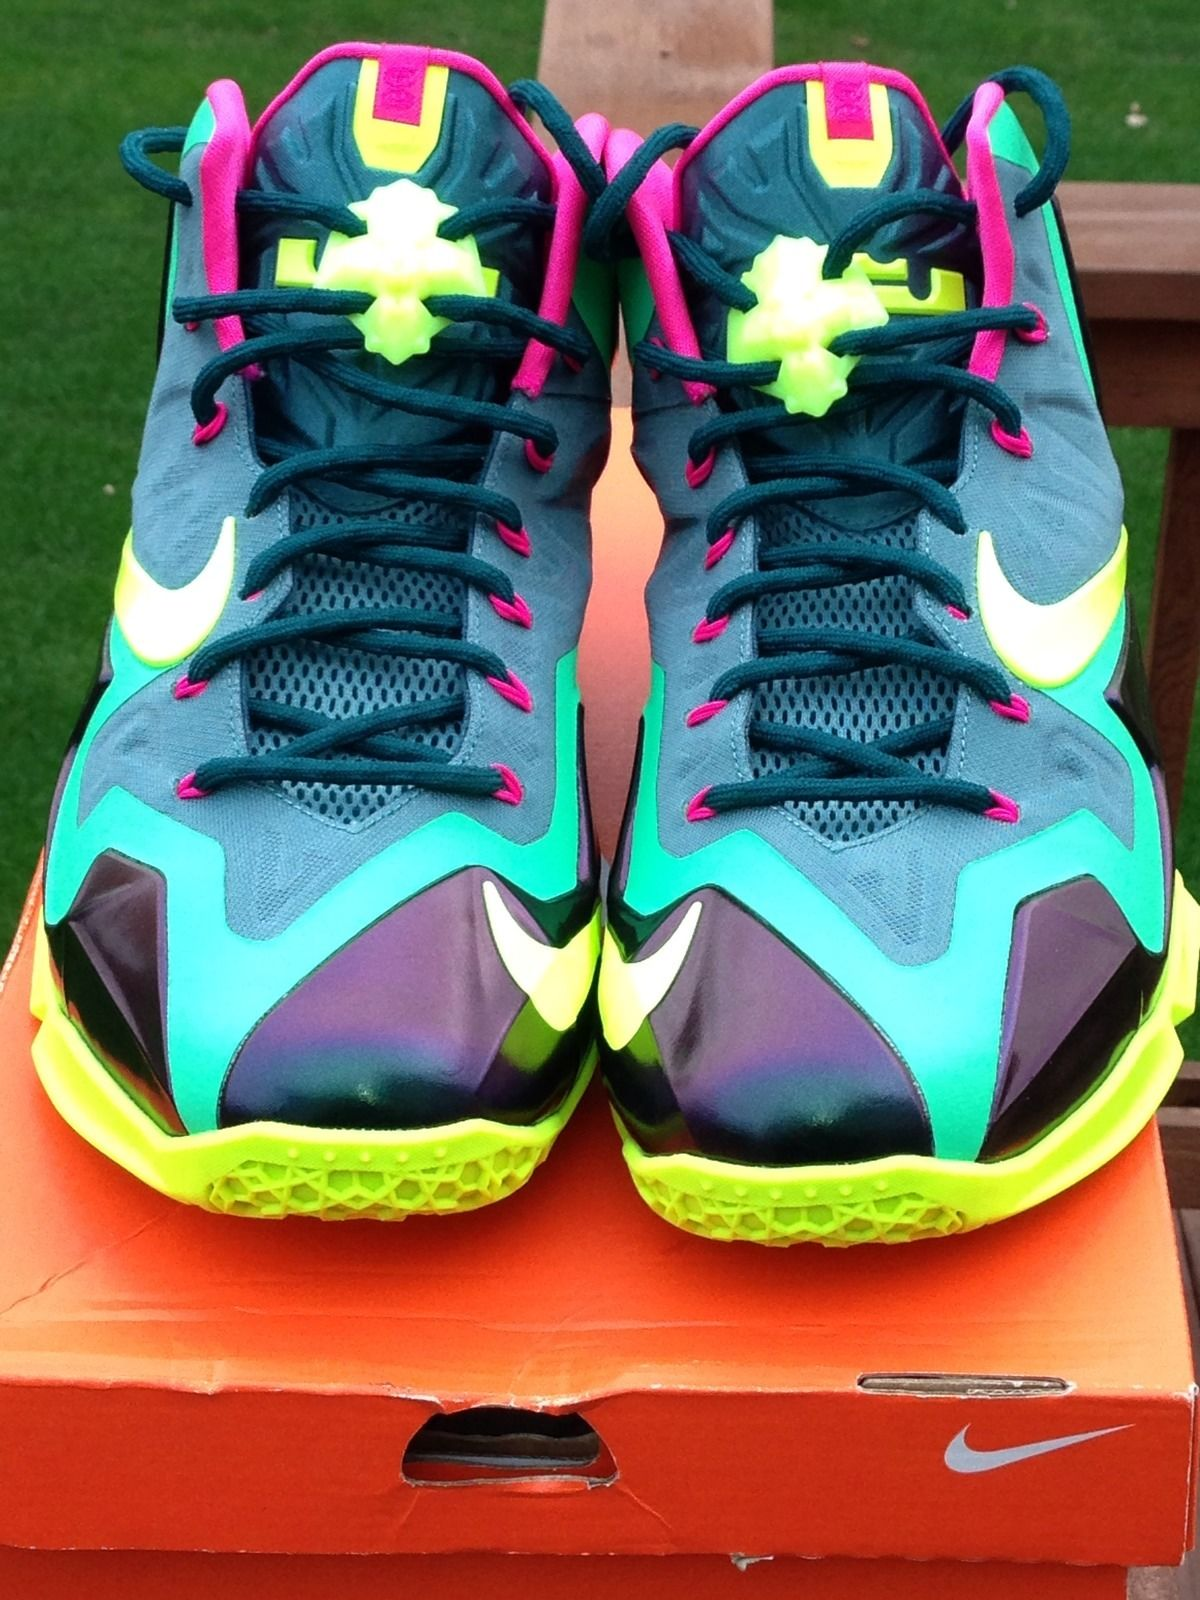 nike-lebron-xi-11-t-rex-new-images-3